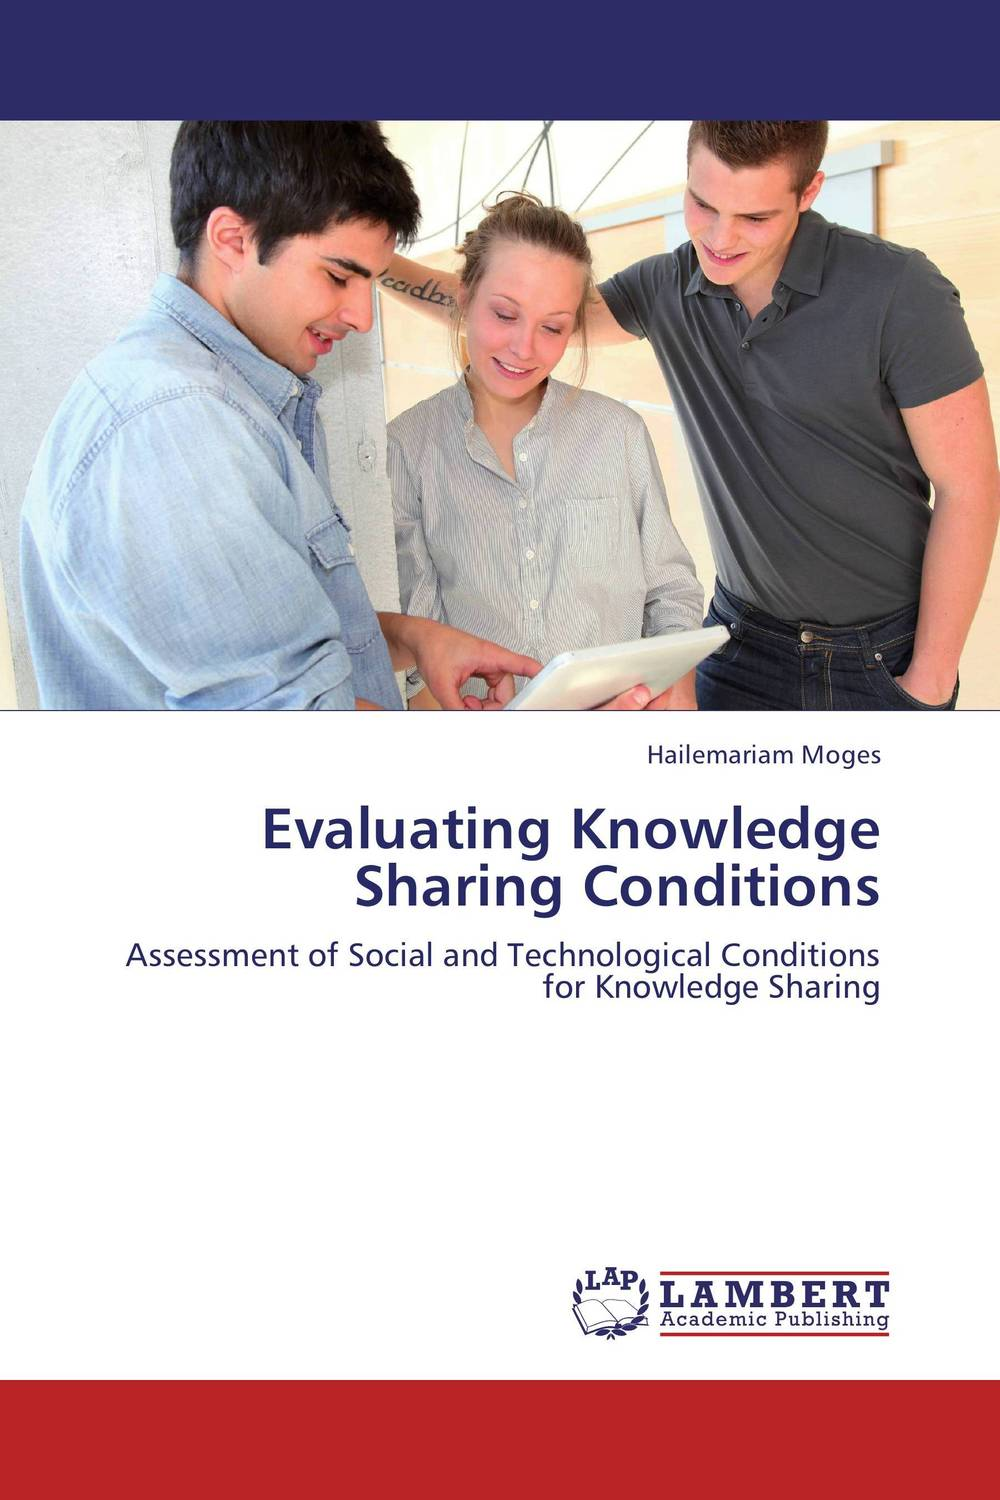 Evaluating Knowledge Sharing Conditions